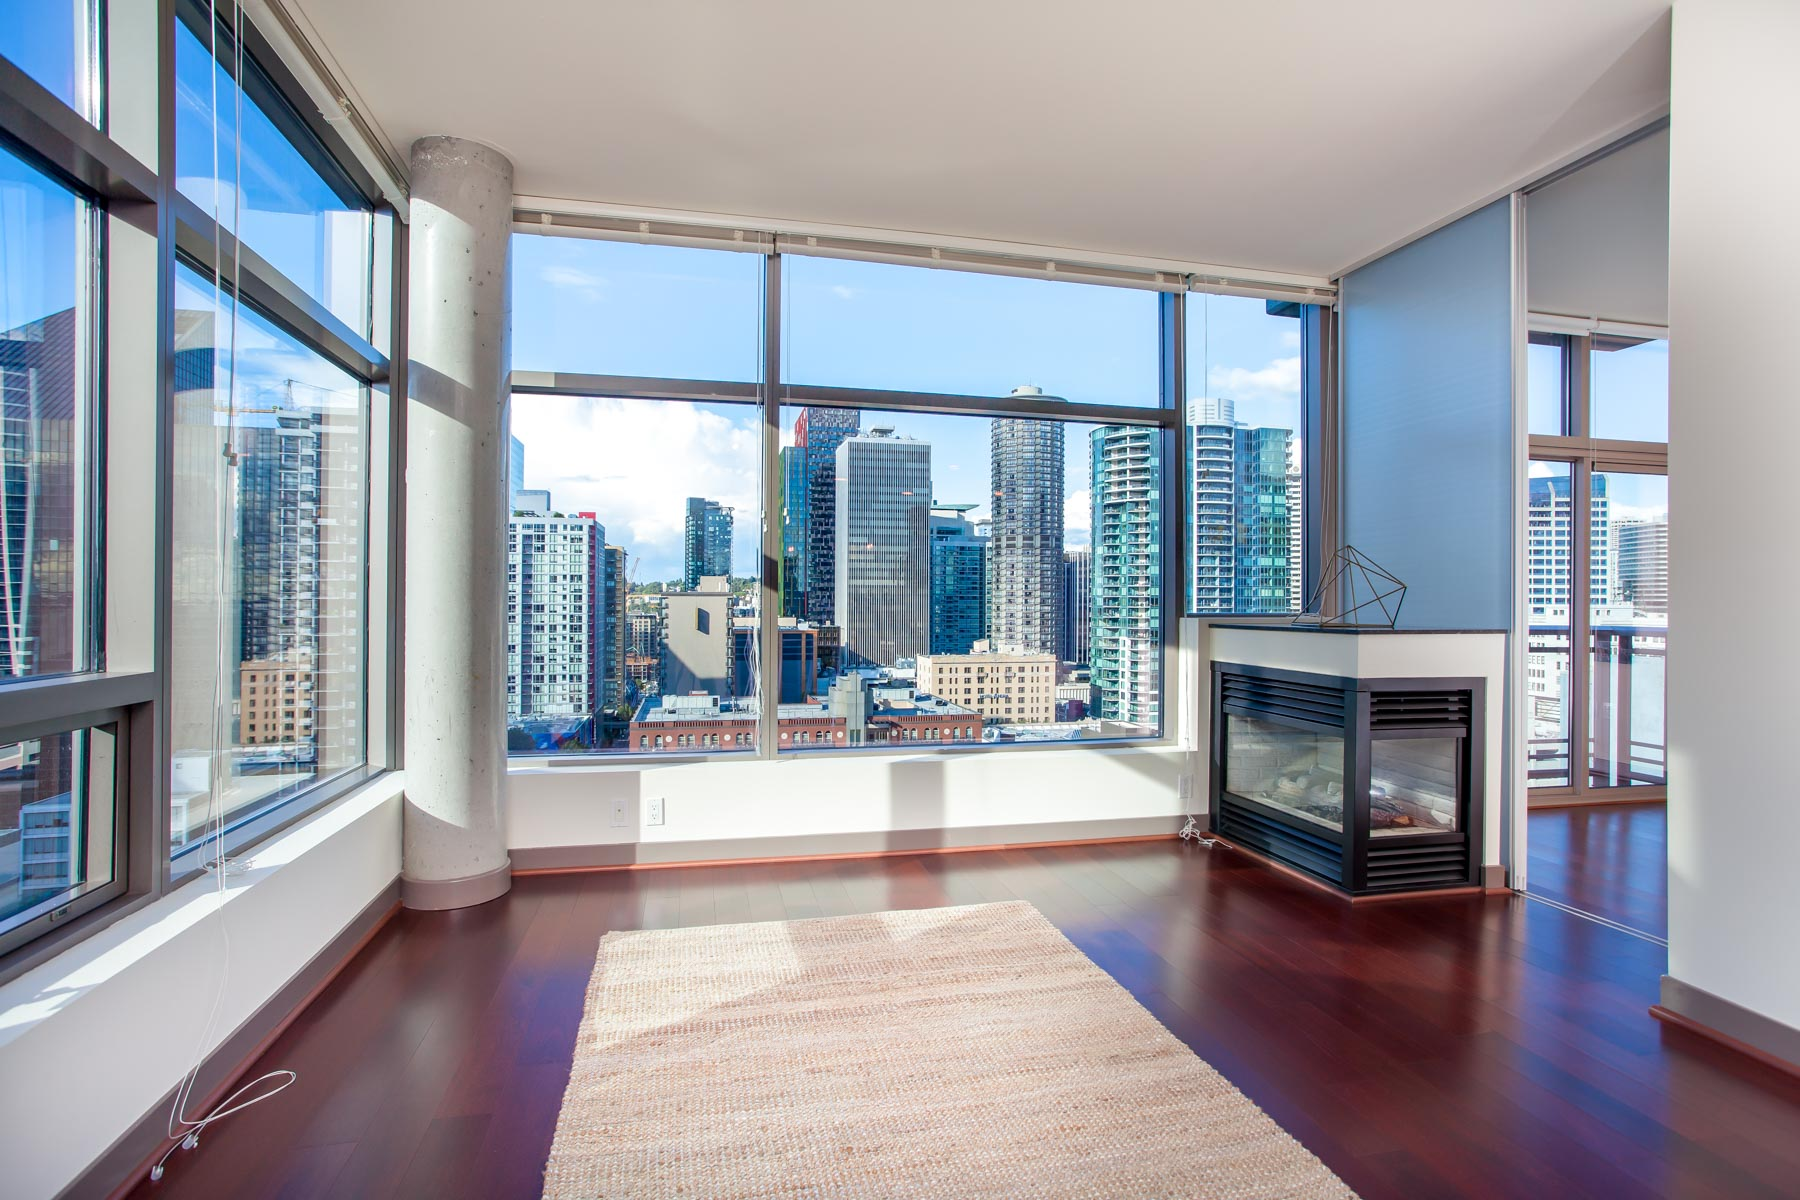 Cristalla Urban City View 1 Bedroom Belltown Condo Urbanash Real Estate